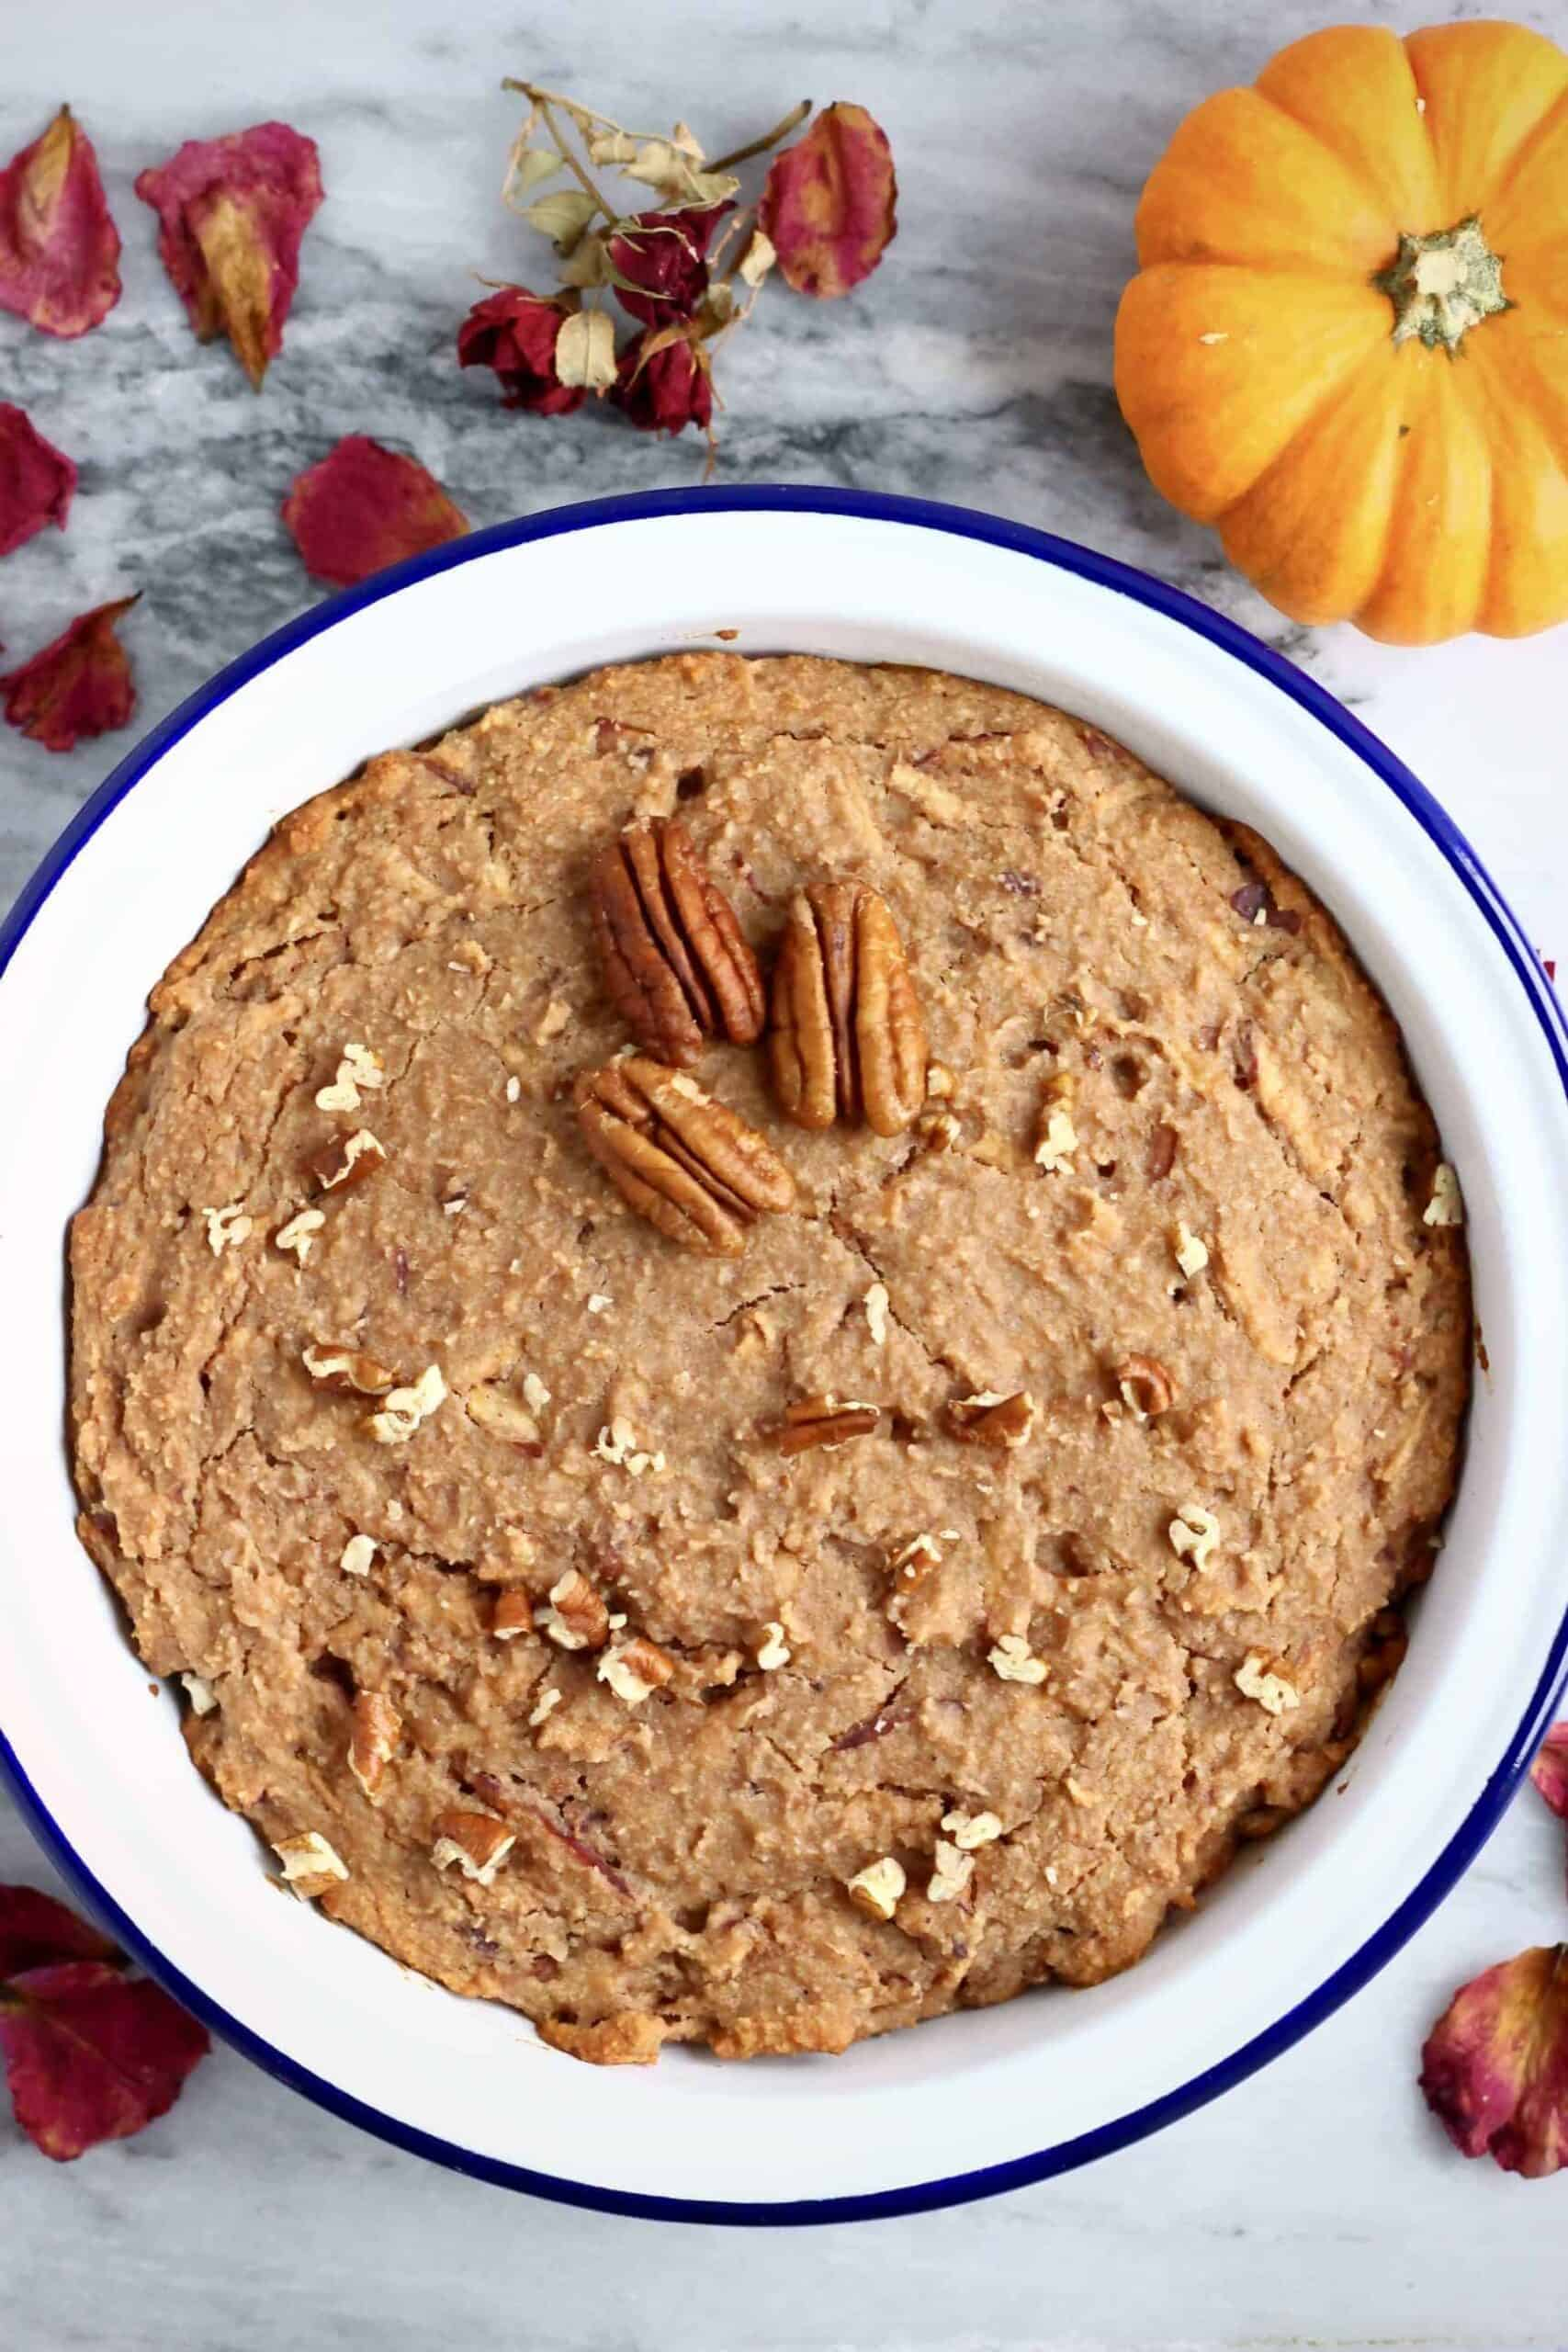 A gluten-free vegan apple cake in a round baking dish topped with chopped pecan nuts